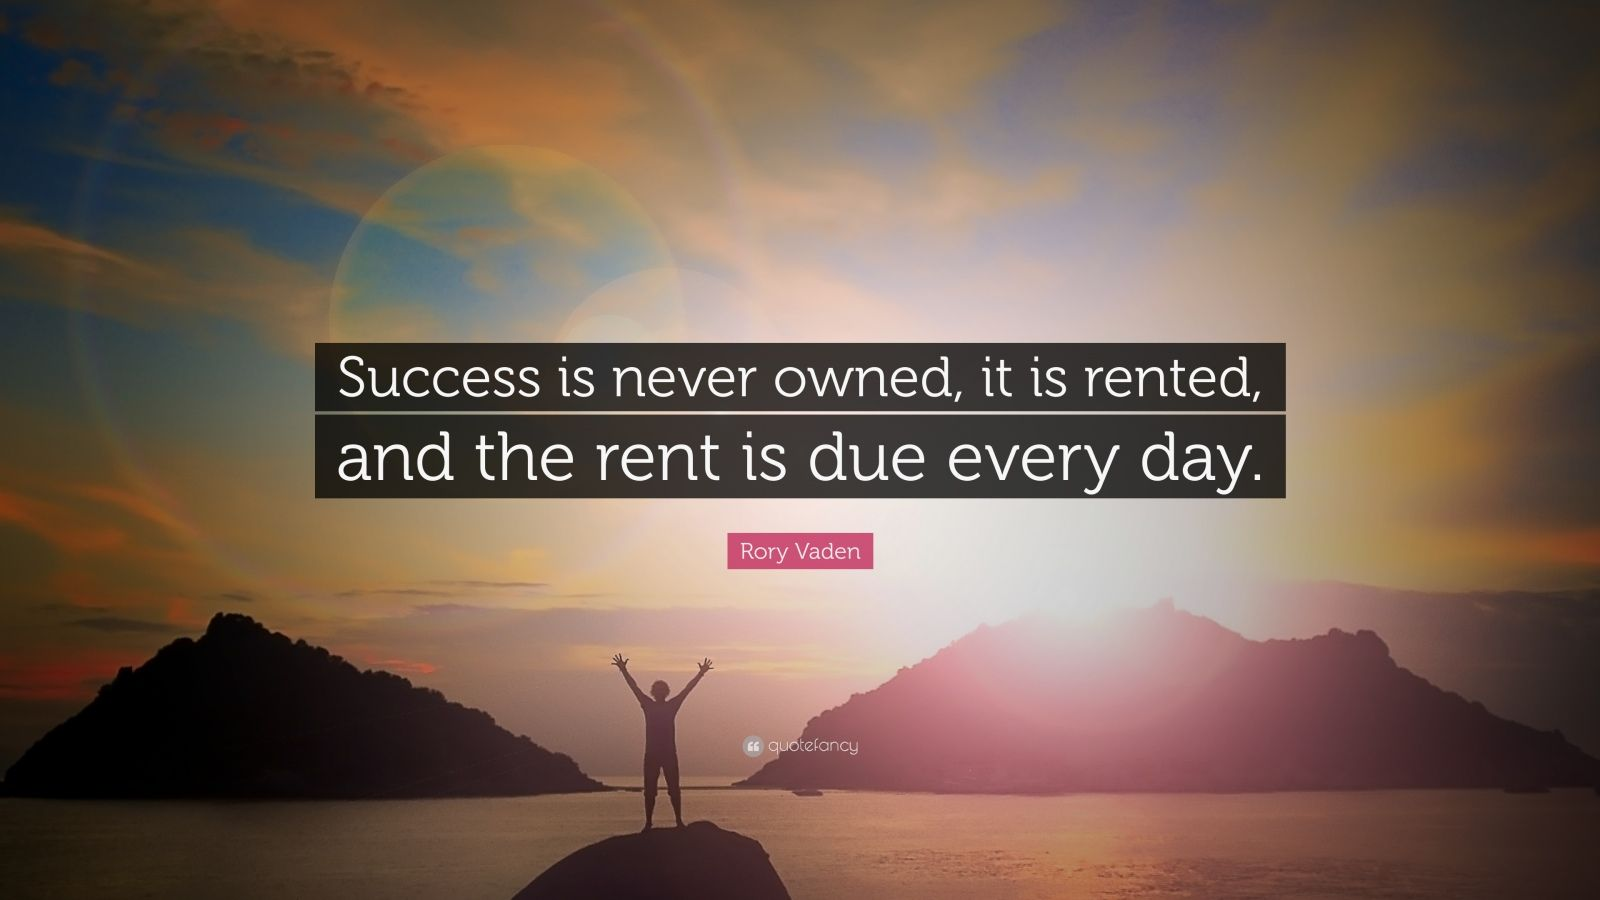 Motivational Life Quotes Wallpapers Rory Vaden Quote Success Is Never Owned It Is Rented